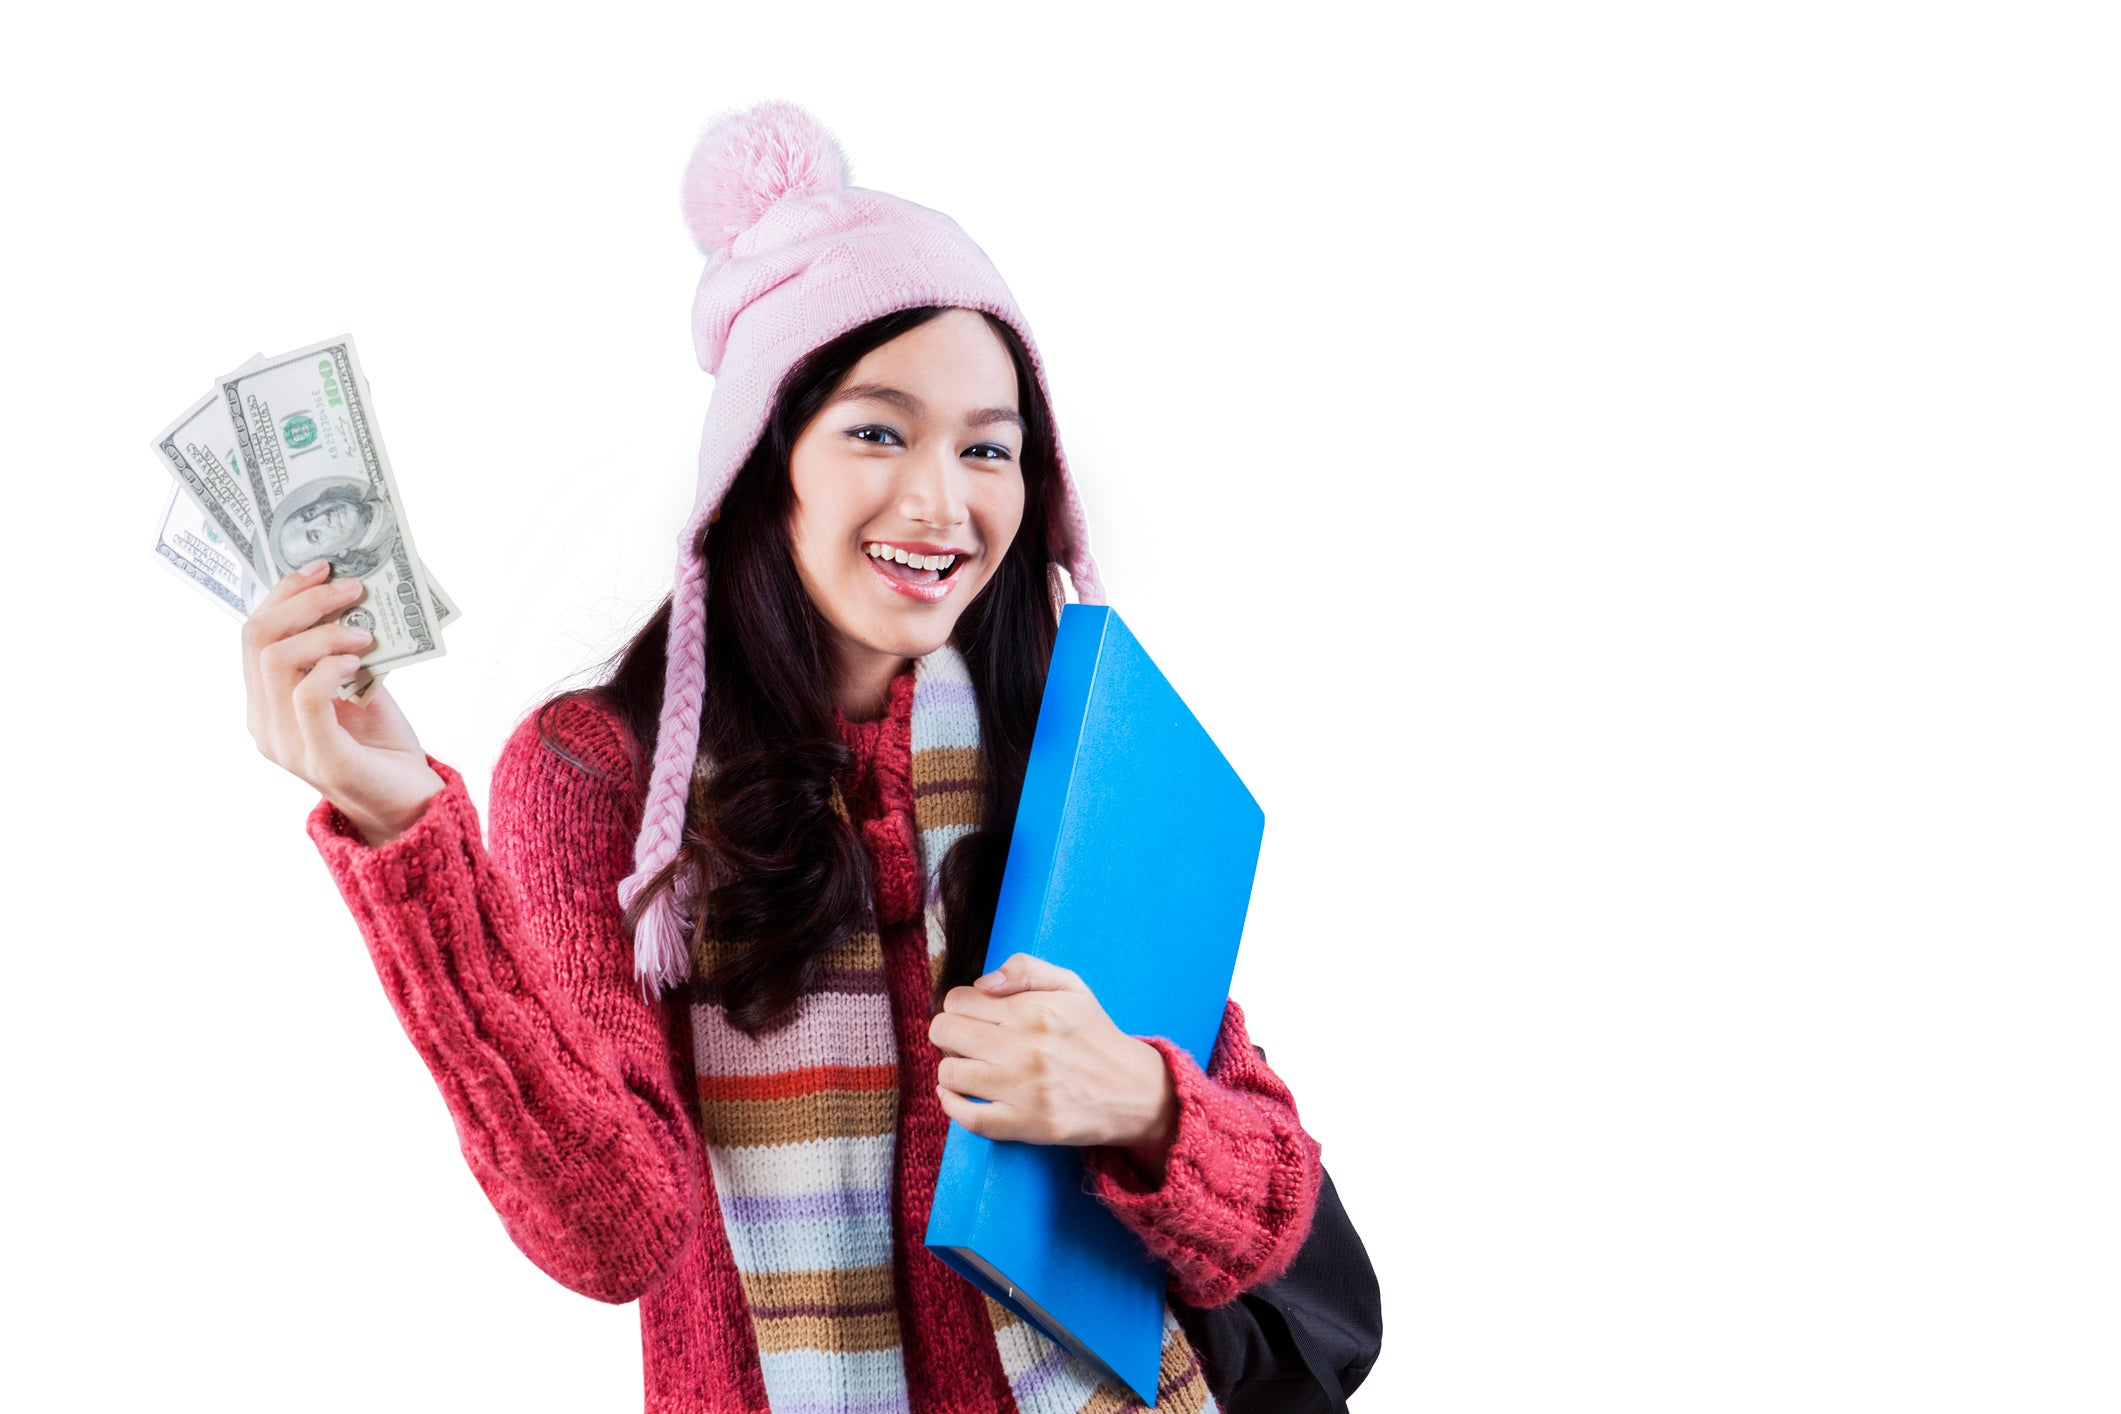 Young woman holding a folder and money.